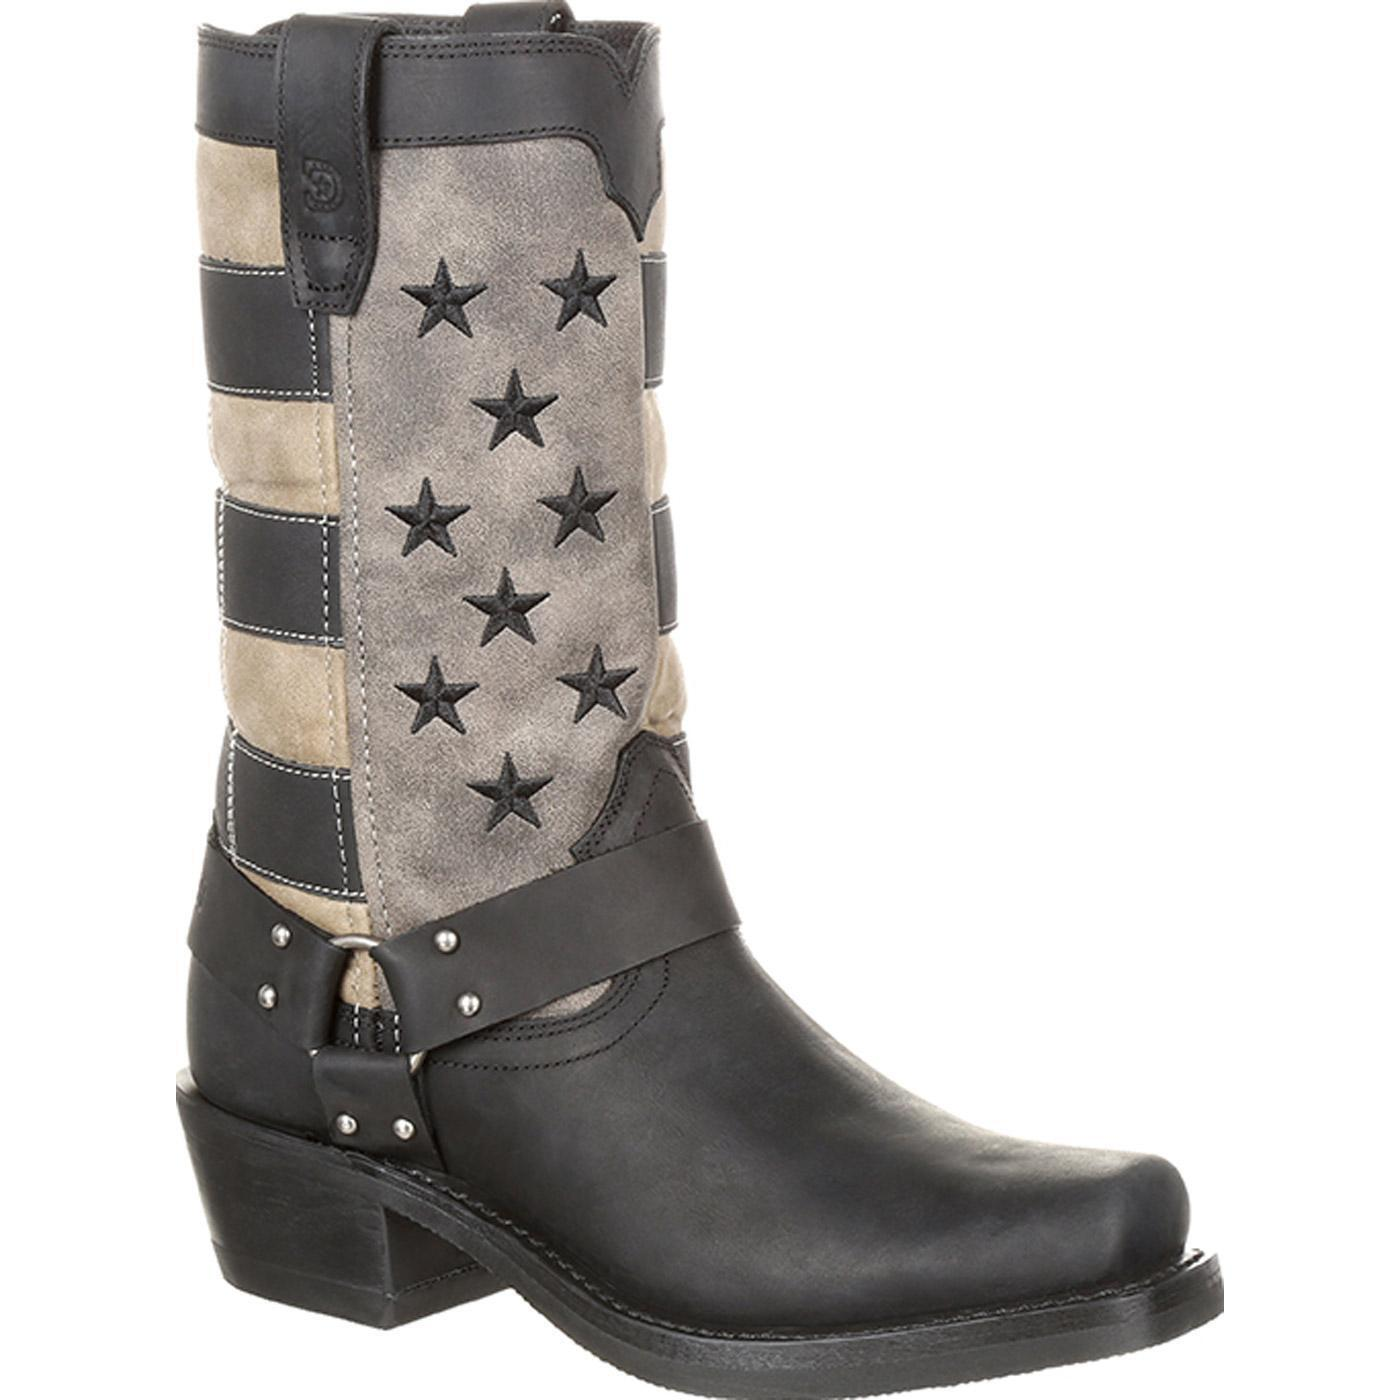 Durango DRD0219 Womens Black Faded Flag Leather Harness Boots